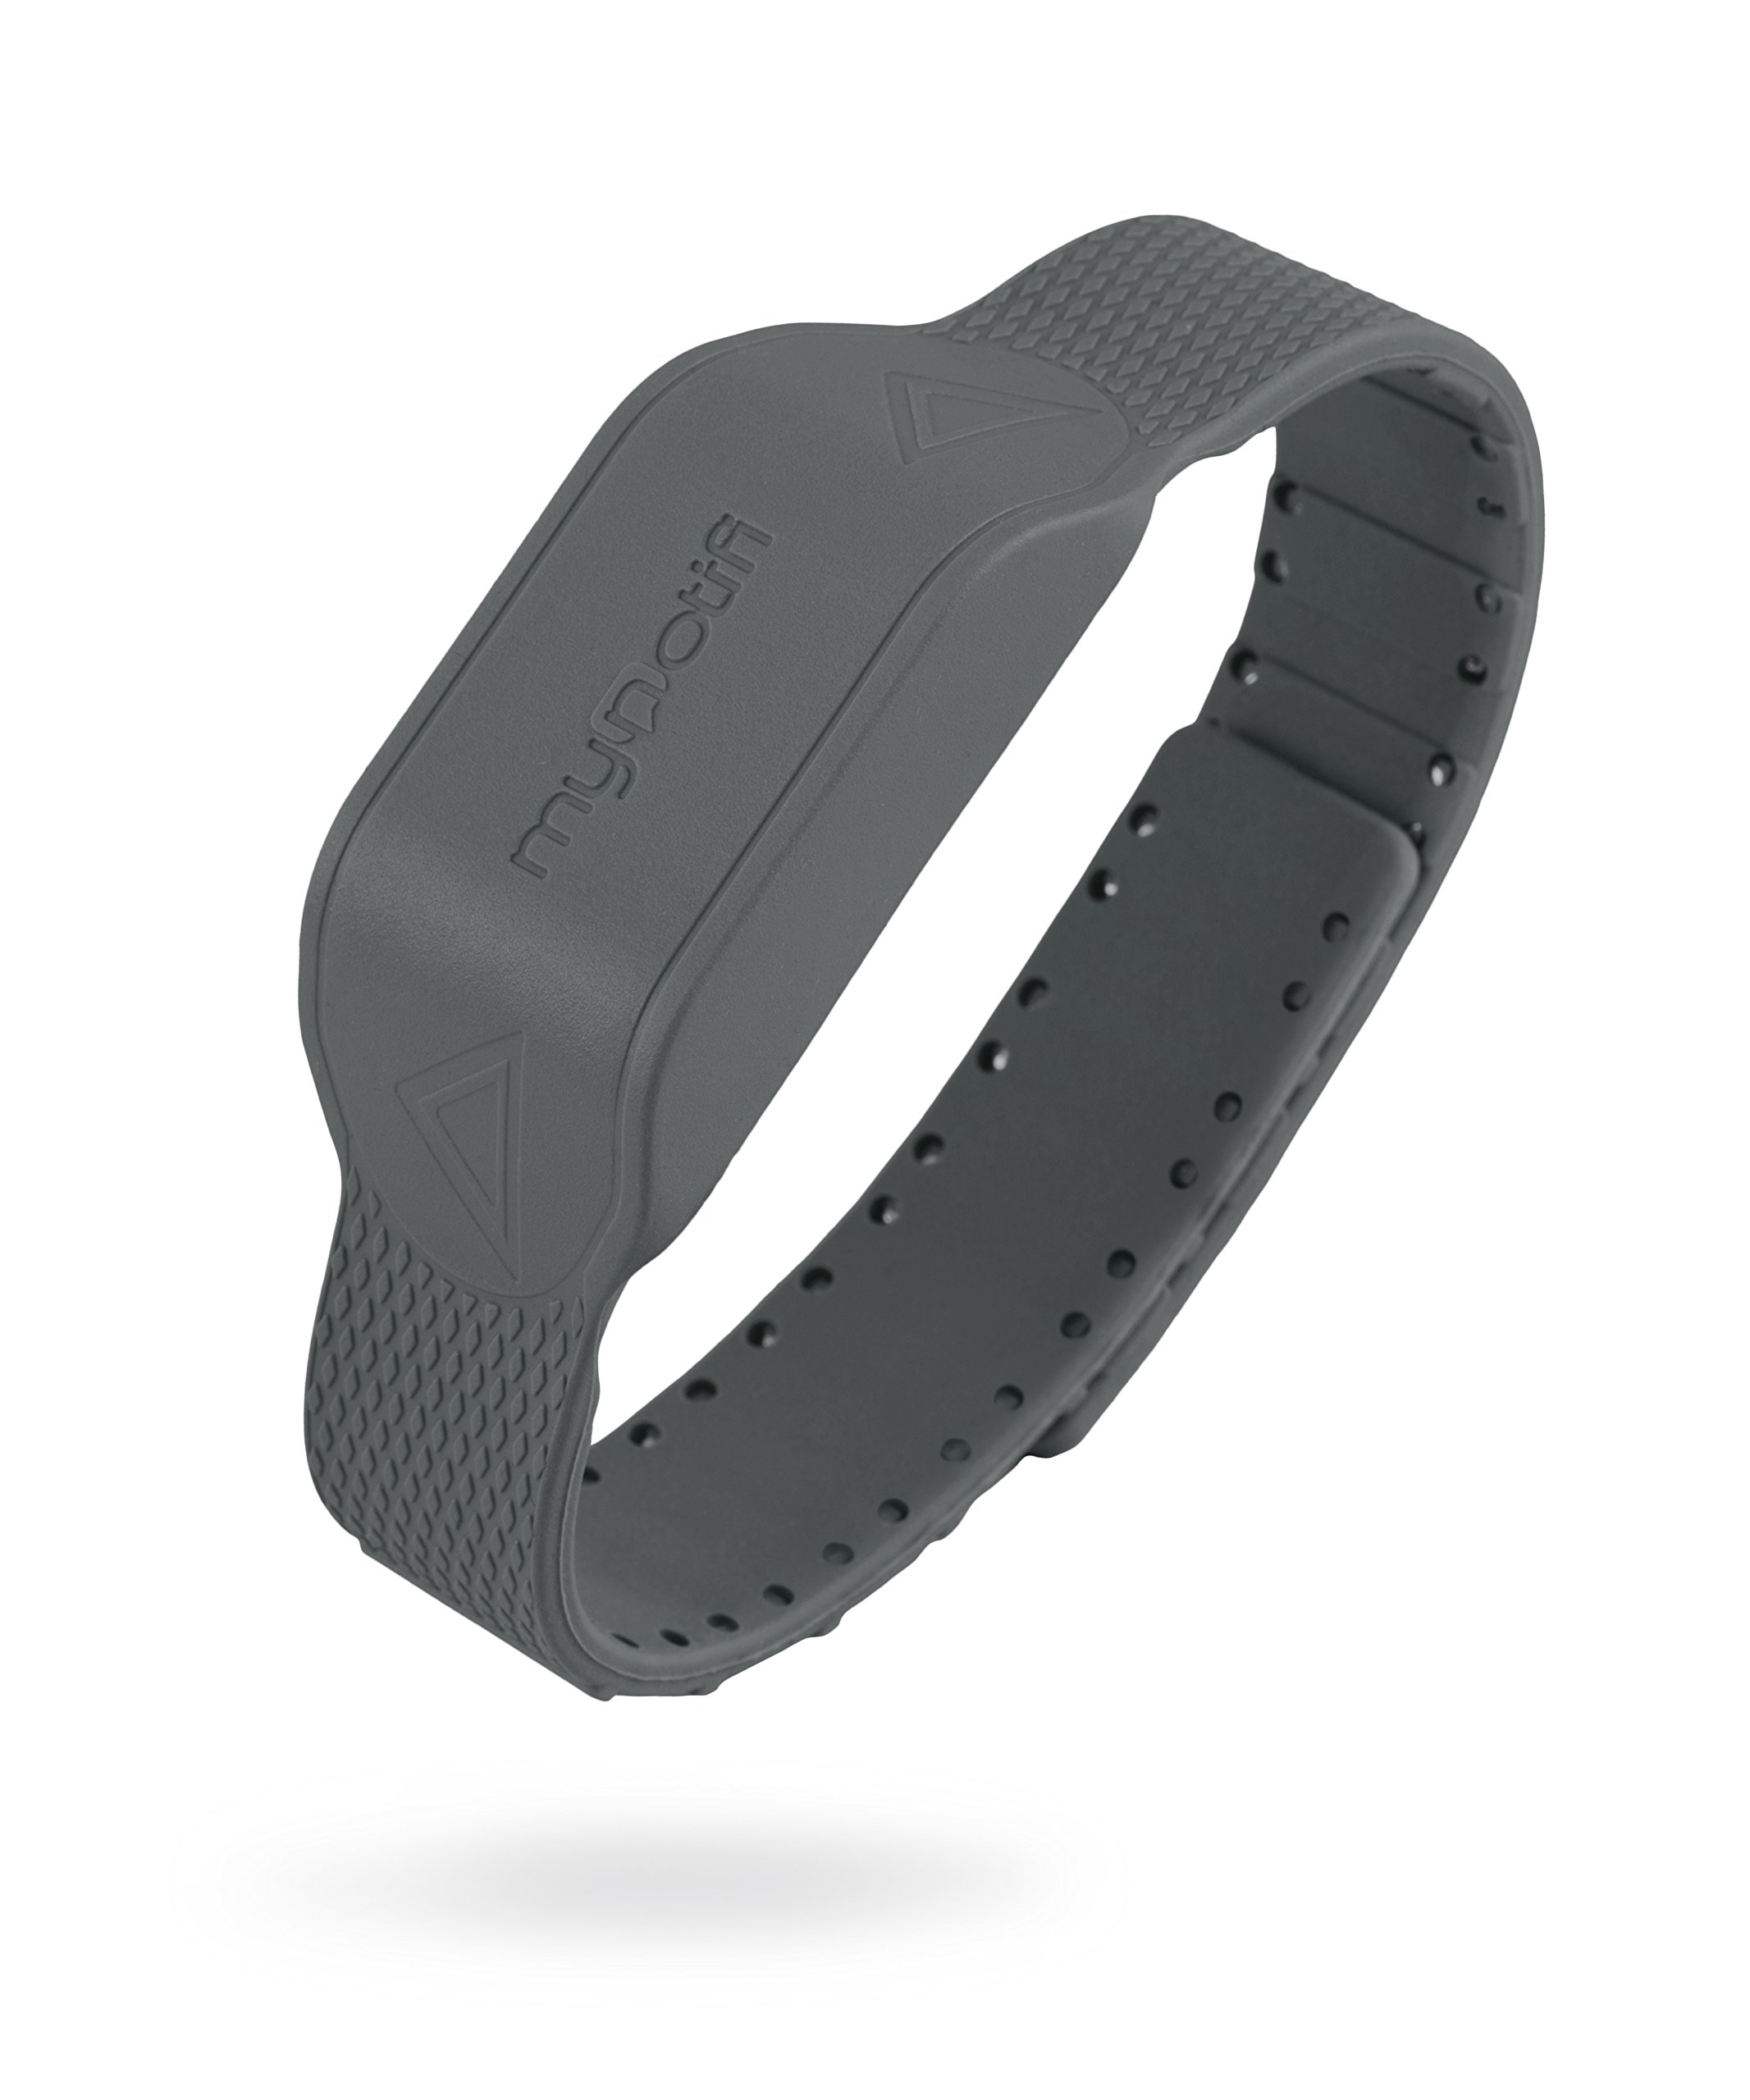 MyNotifi Automatic Fall Detection Wearable - No Call Center, No Monthly Fees - Alerts Family and Friends - Medical Alert System for Seniors